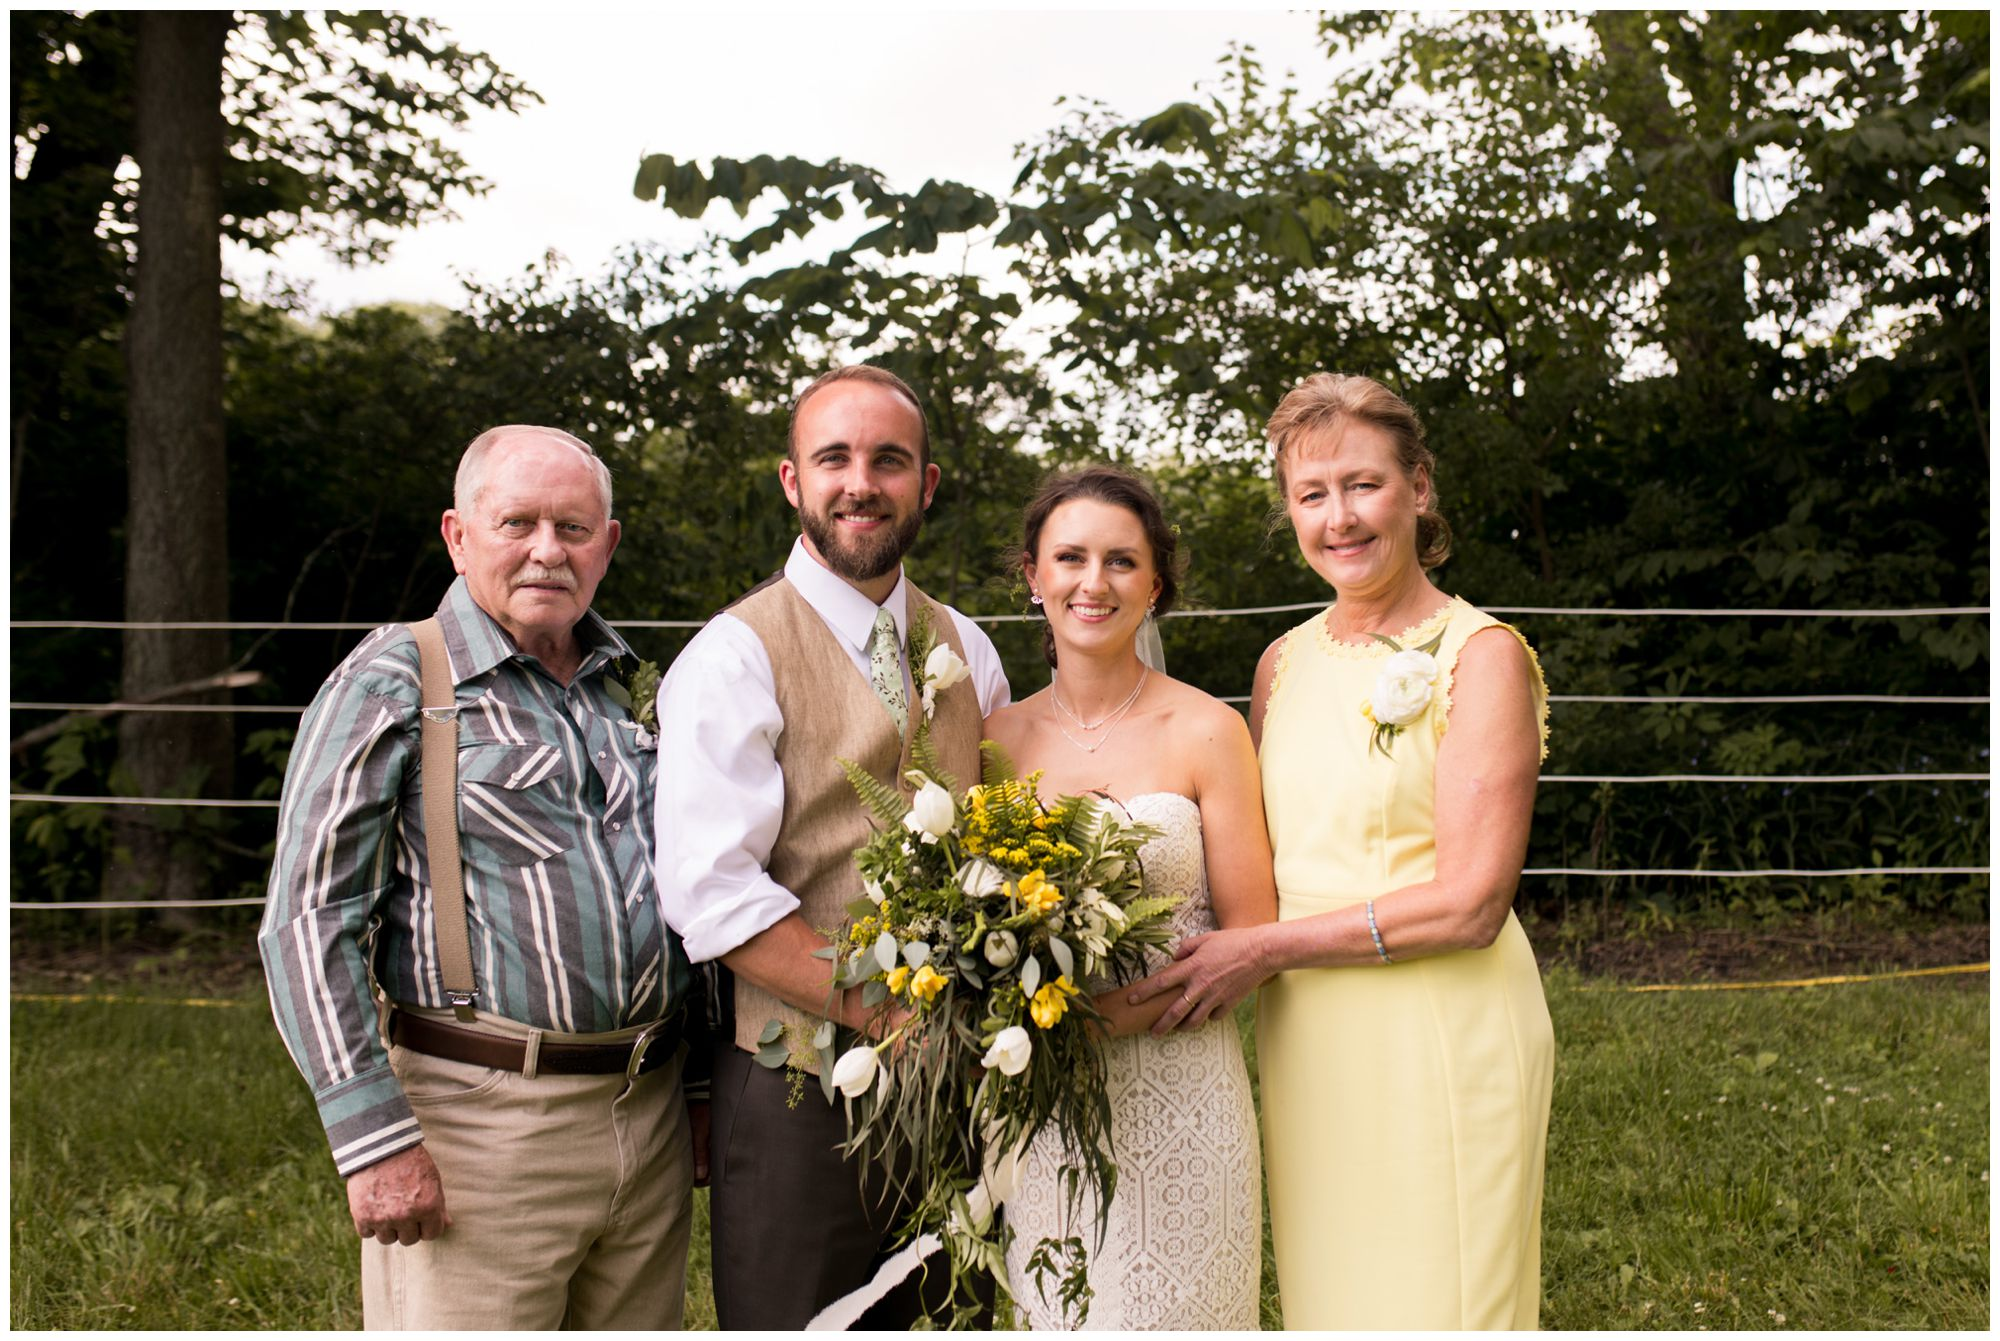 bride and groom with bride's mom and dad family formal portrait